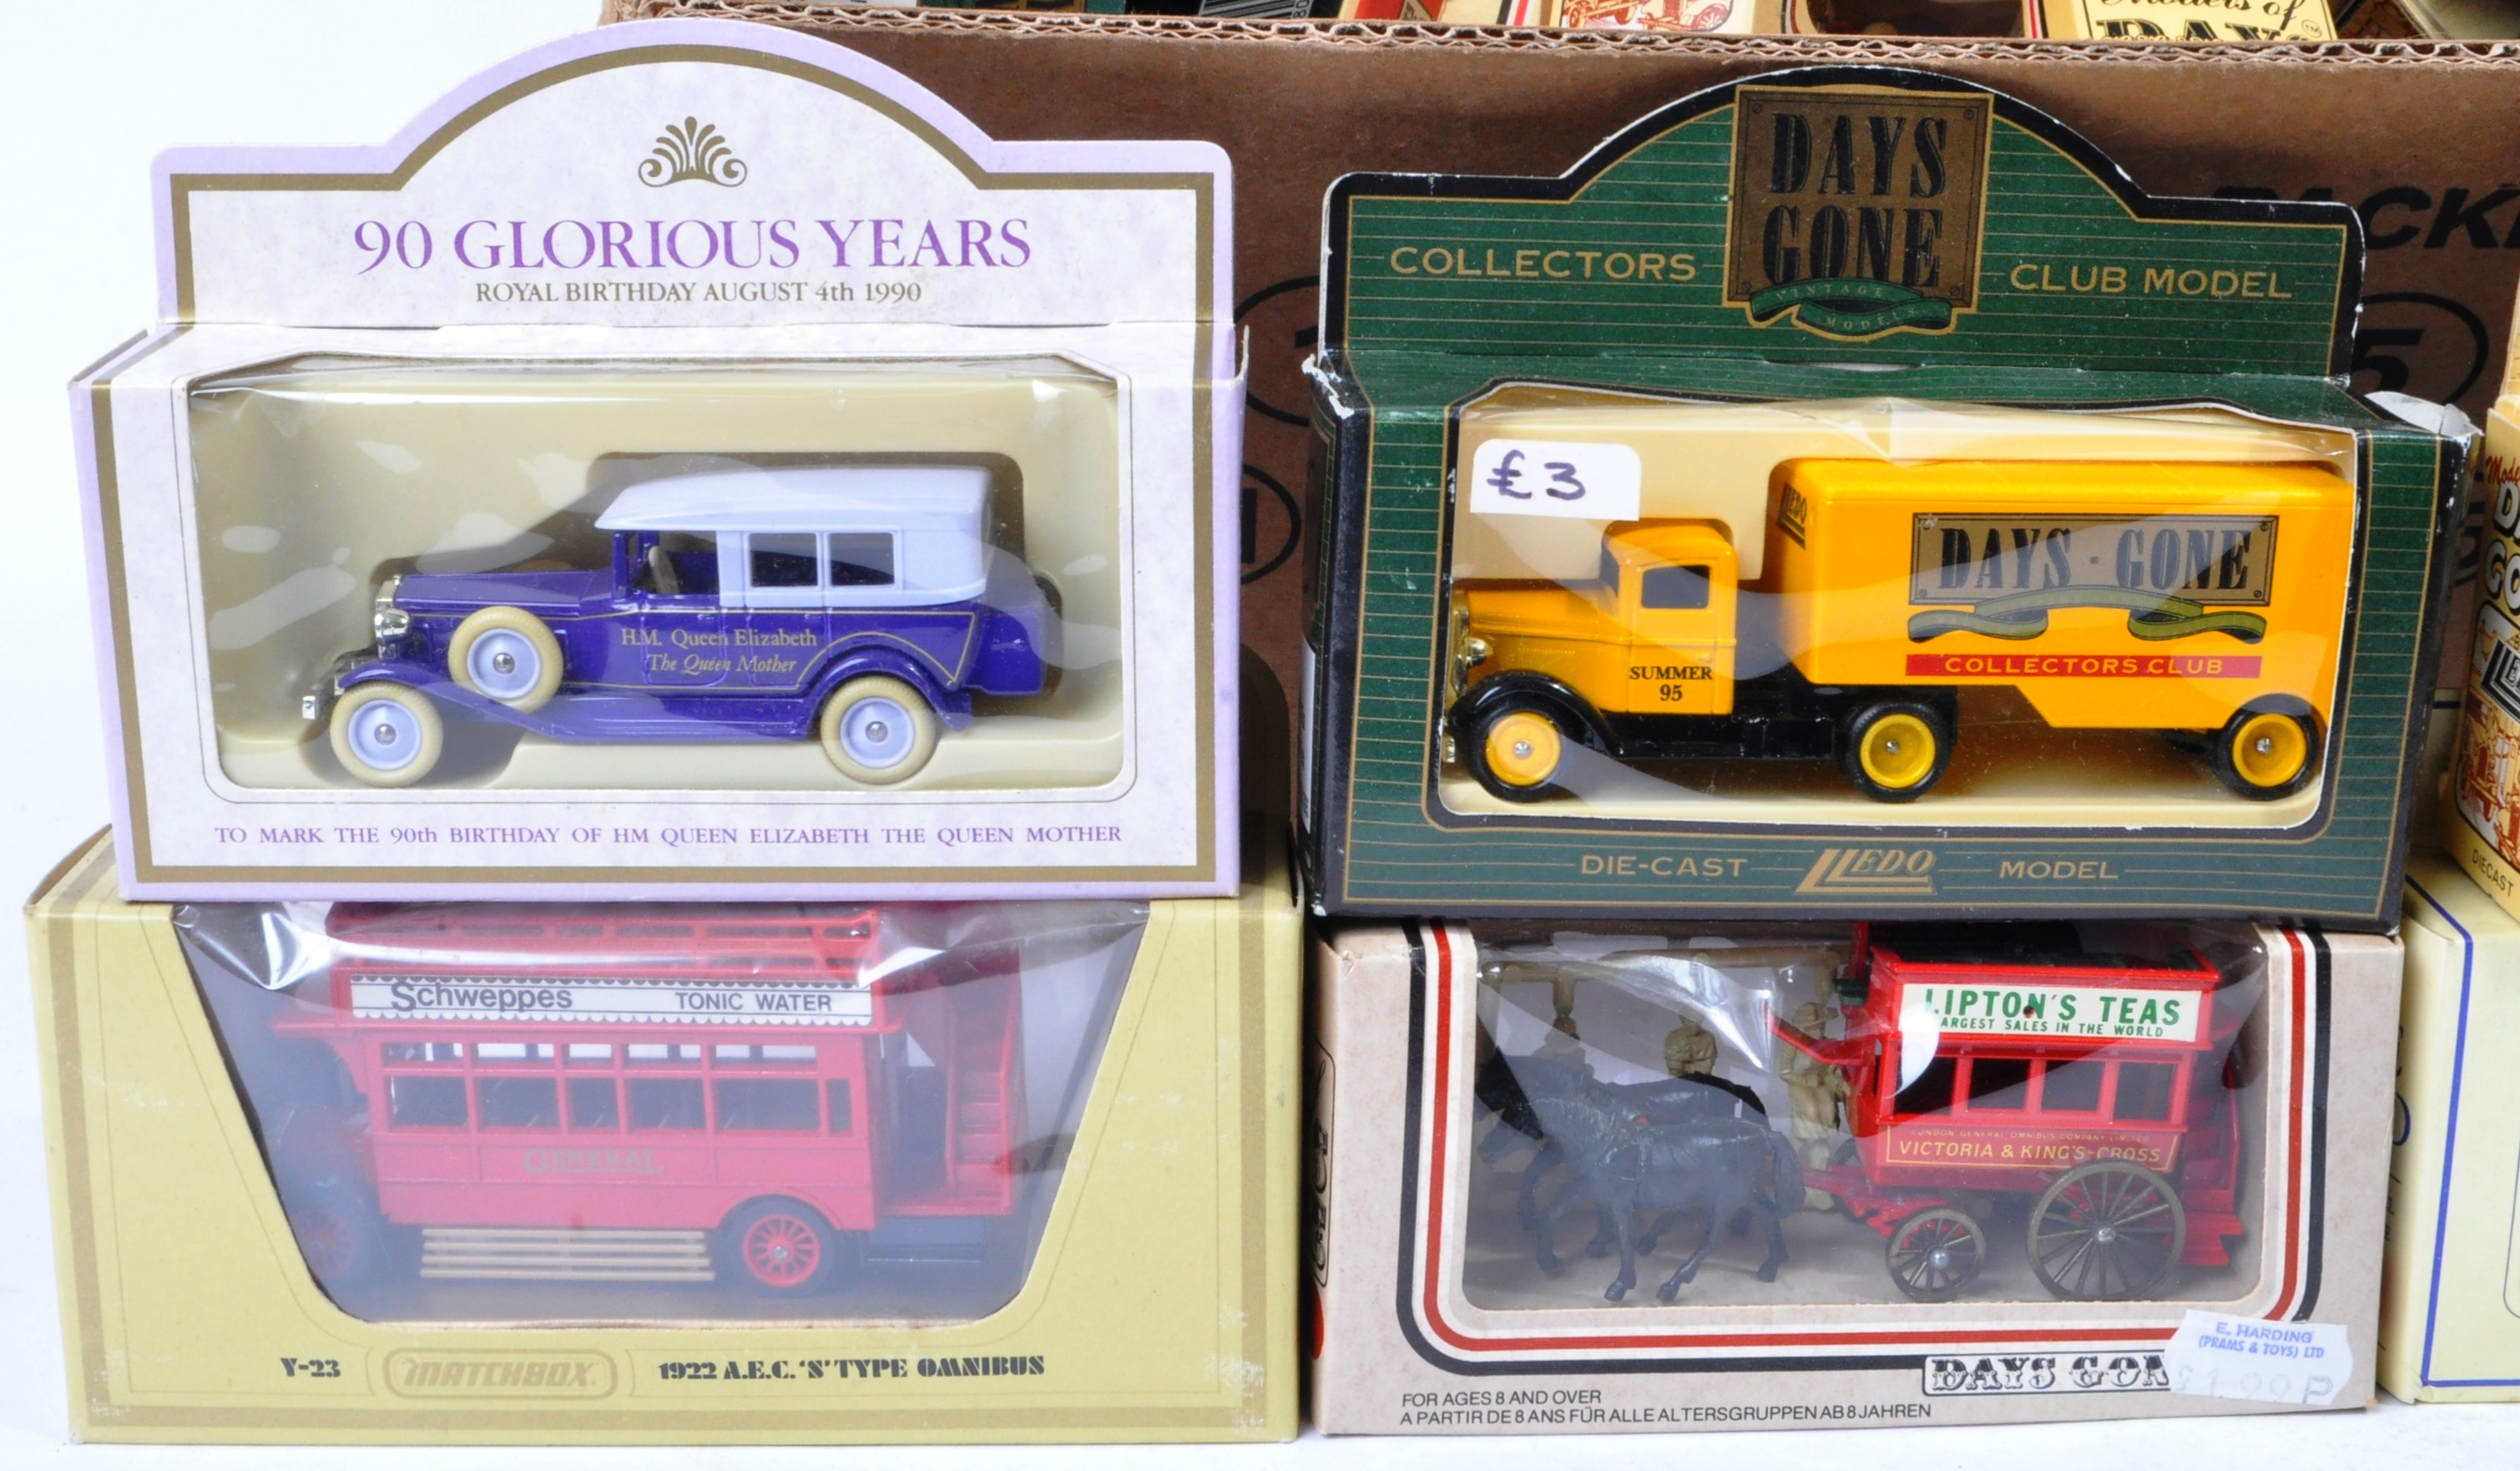 LARGE COLLECTION OF ASSORTED BOXED DIECAST - LLEDO, MATCHBOX - Image 2 of 4